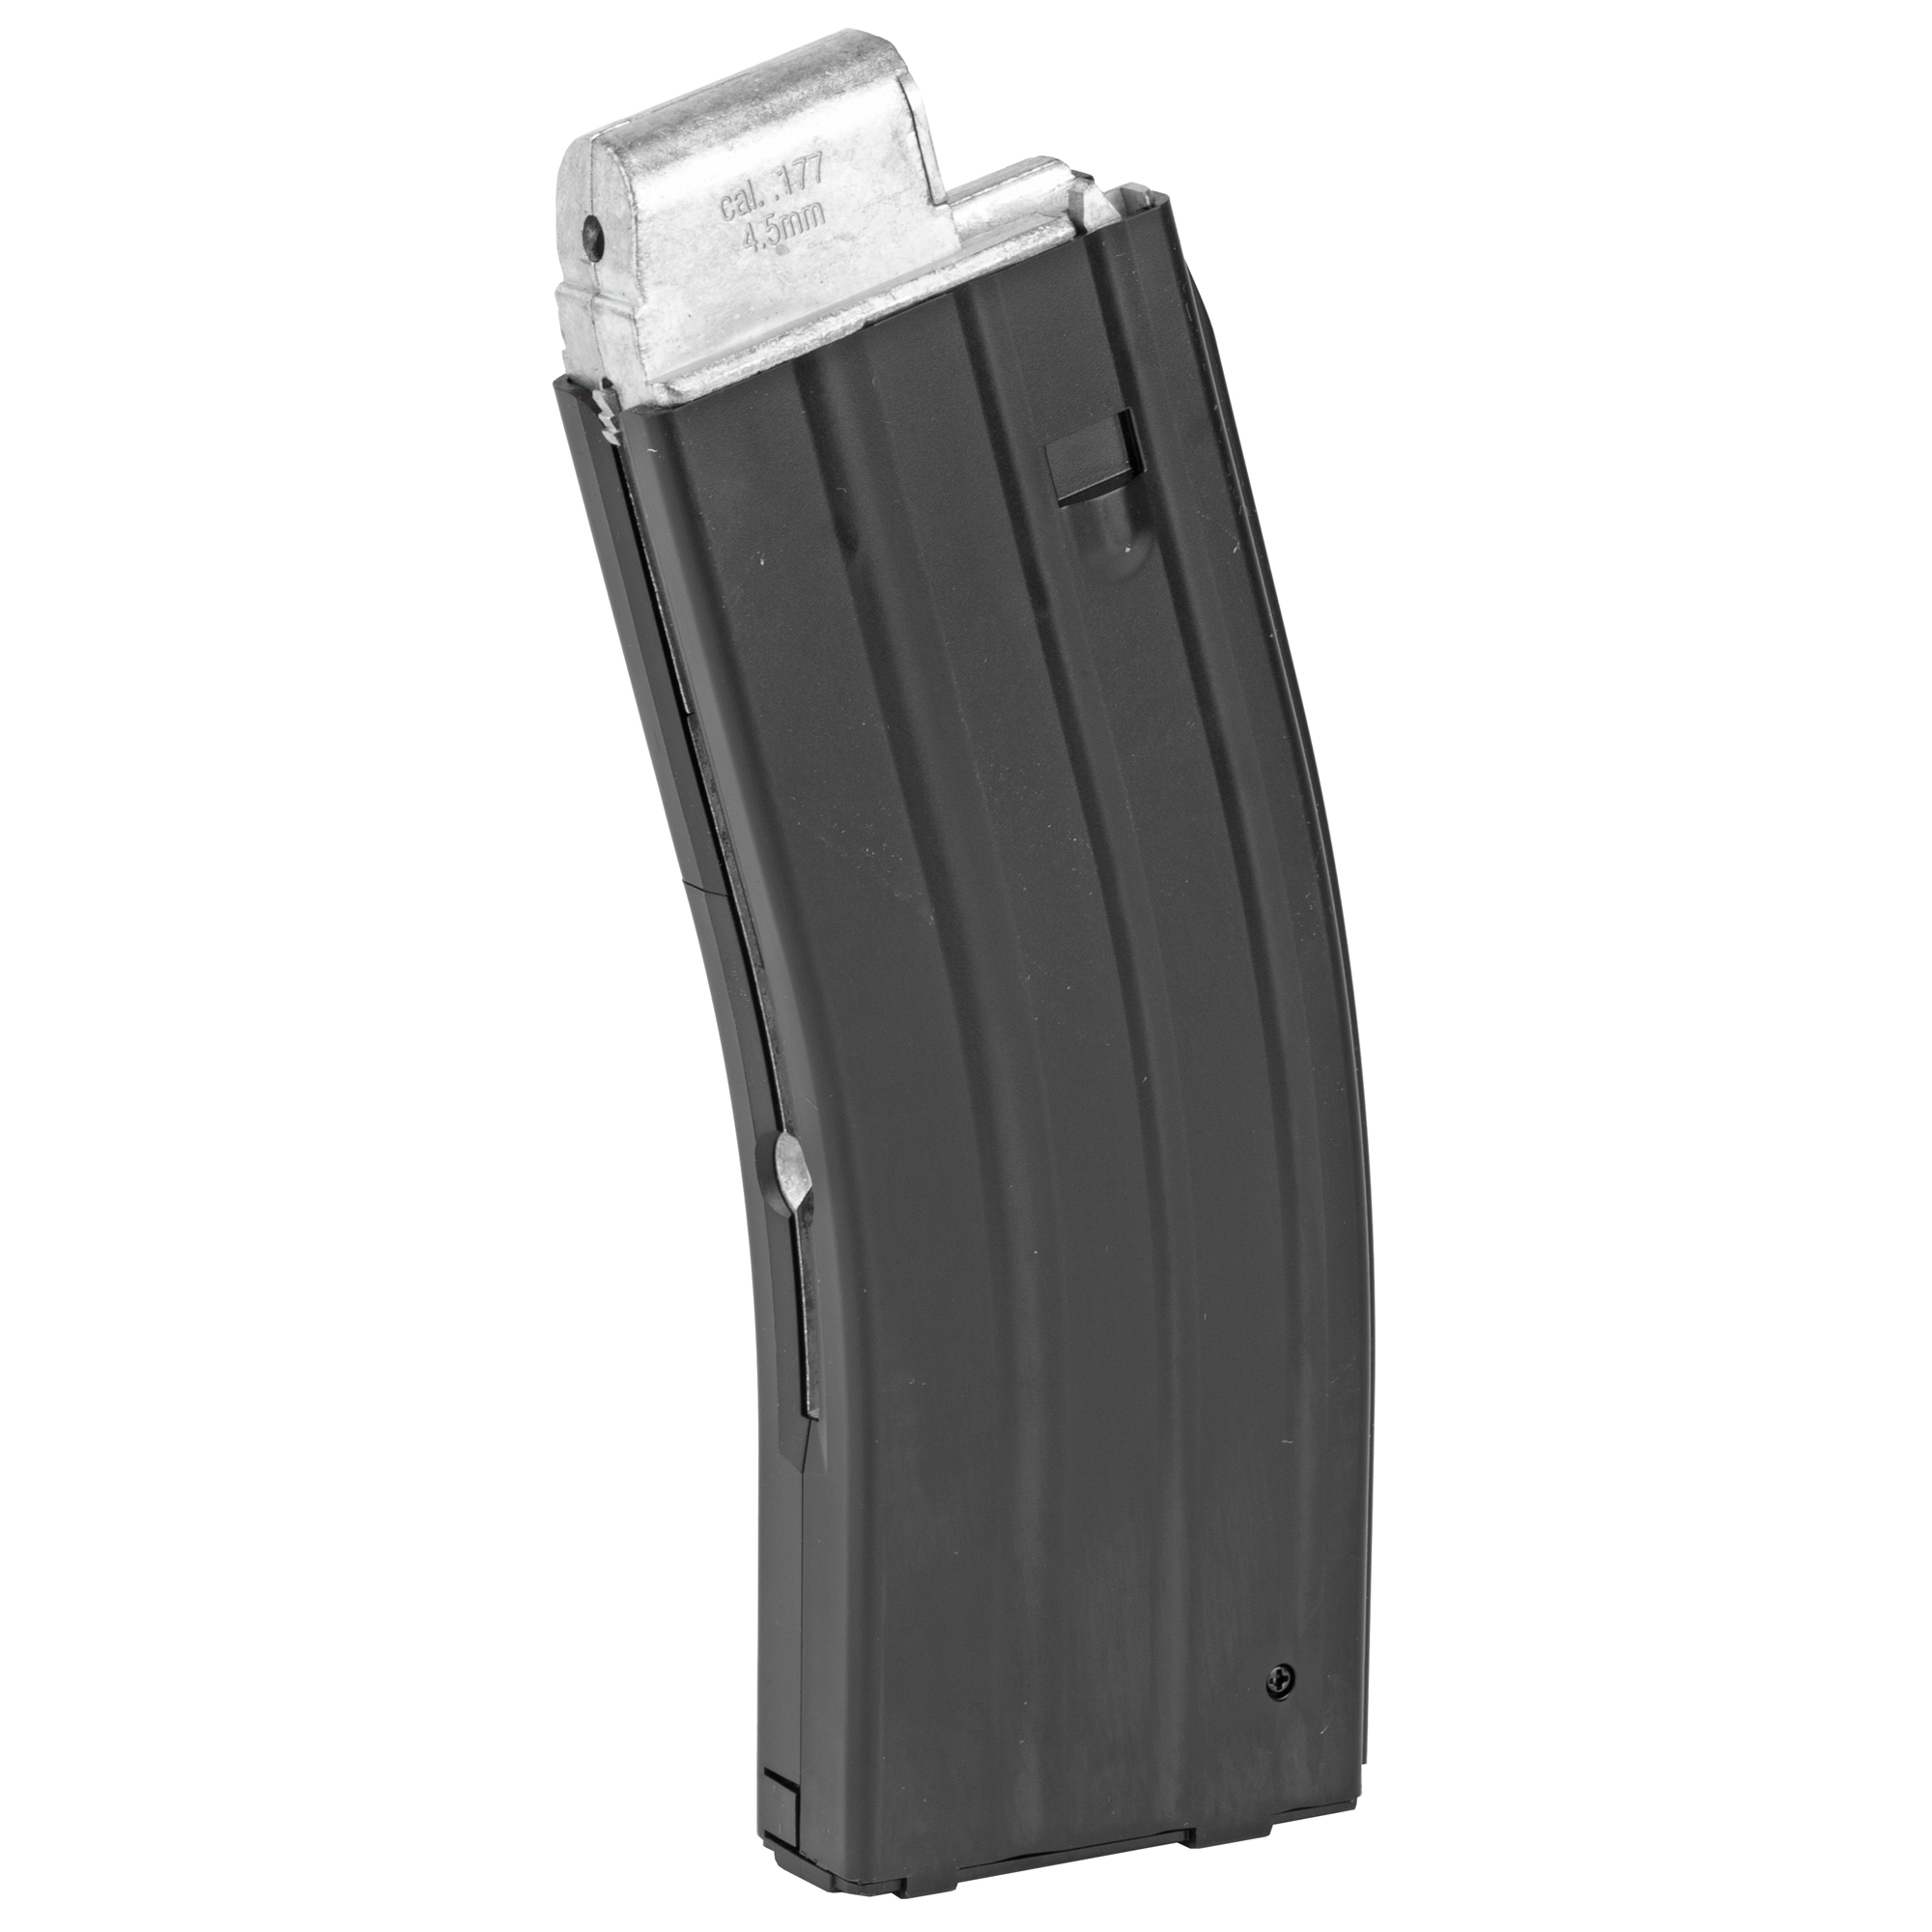 The Crosman DPMS SBR air rifle magazine is designed to work with .177 caliber BB's and has two CO2 cartridge refill ports. Note: CO2 Tanks are not included.